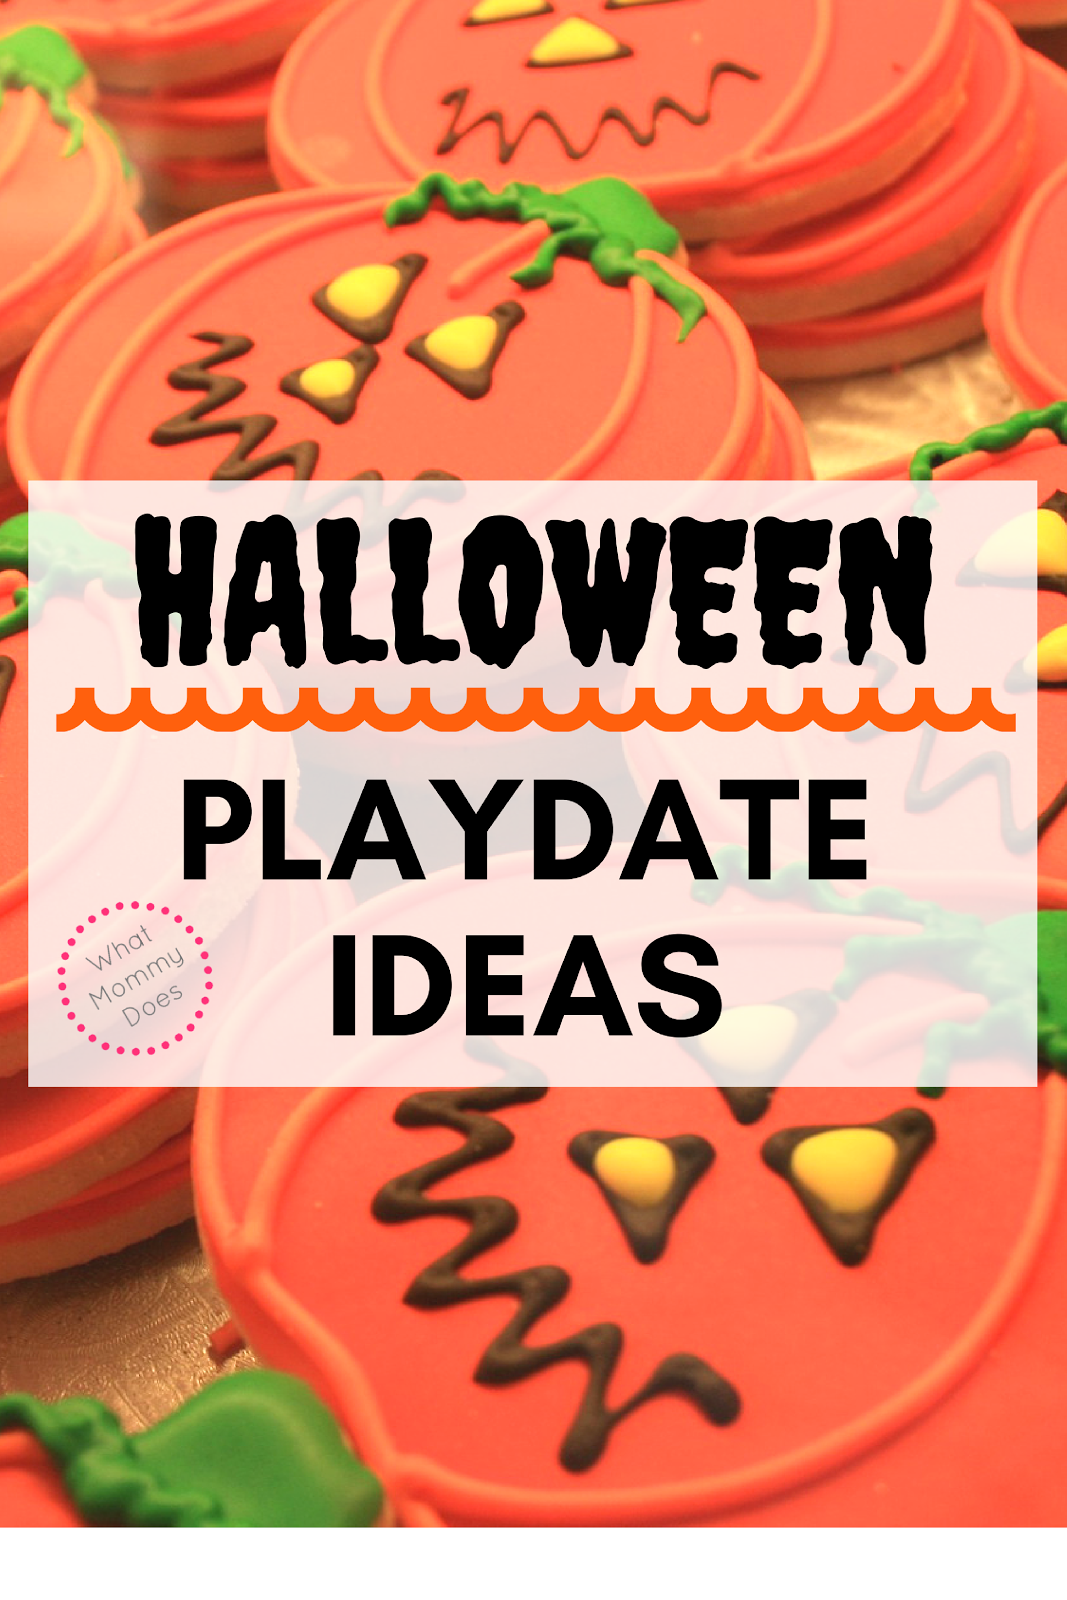 Lots of fun Halloween playdate ideas listed here. Now, I want to plan some of these Halloween activities for my own kids and their friends!!